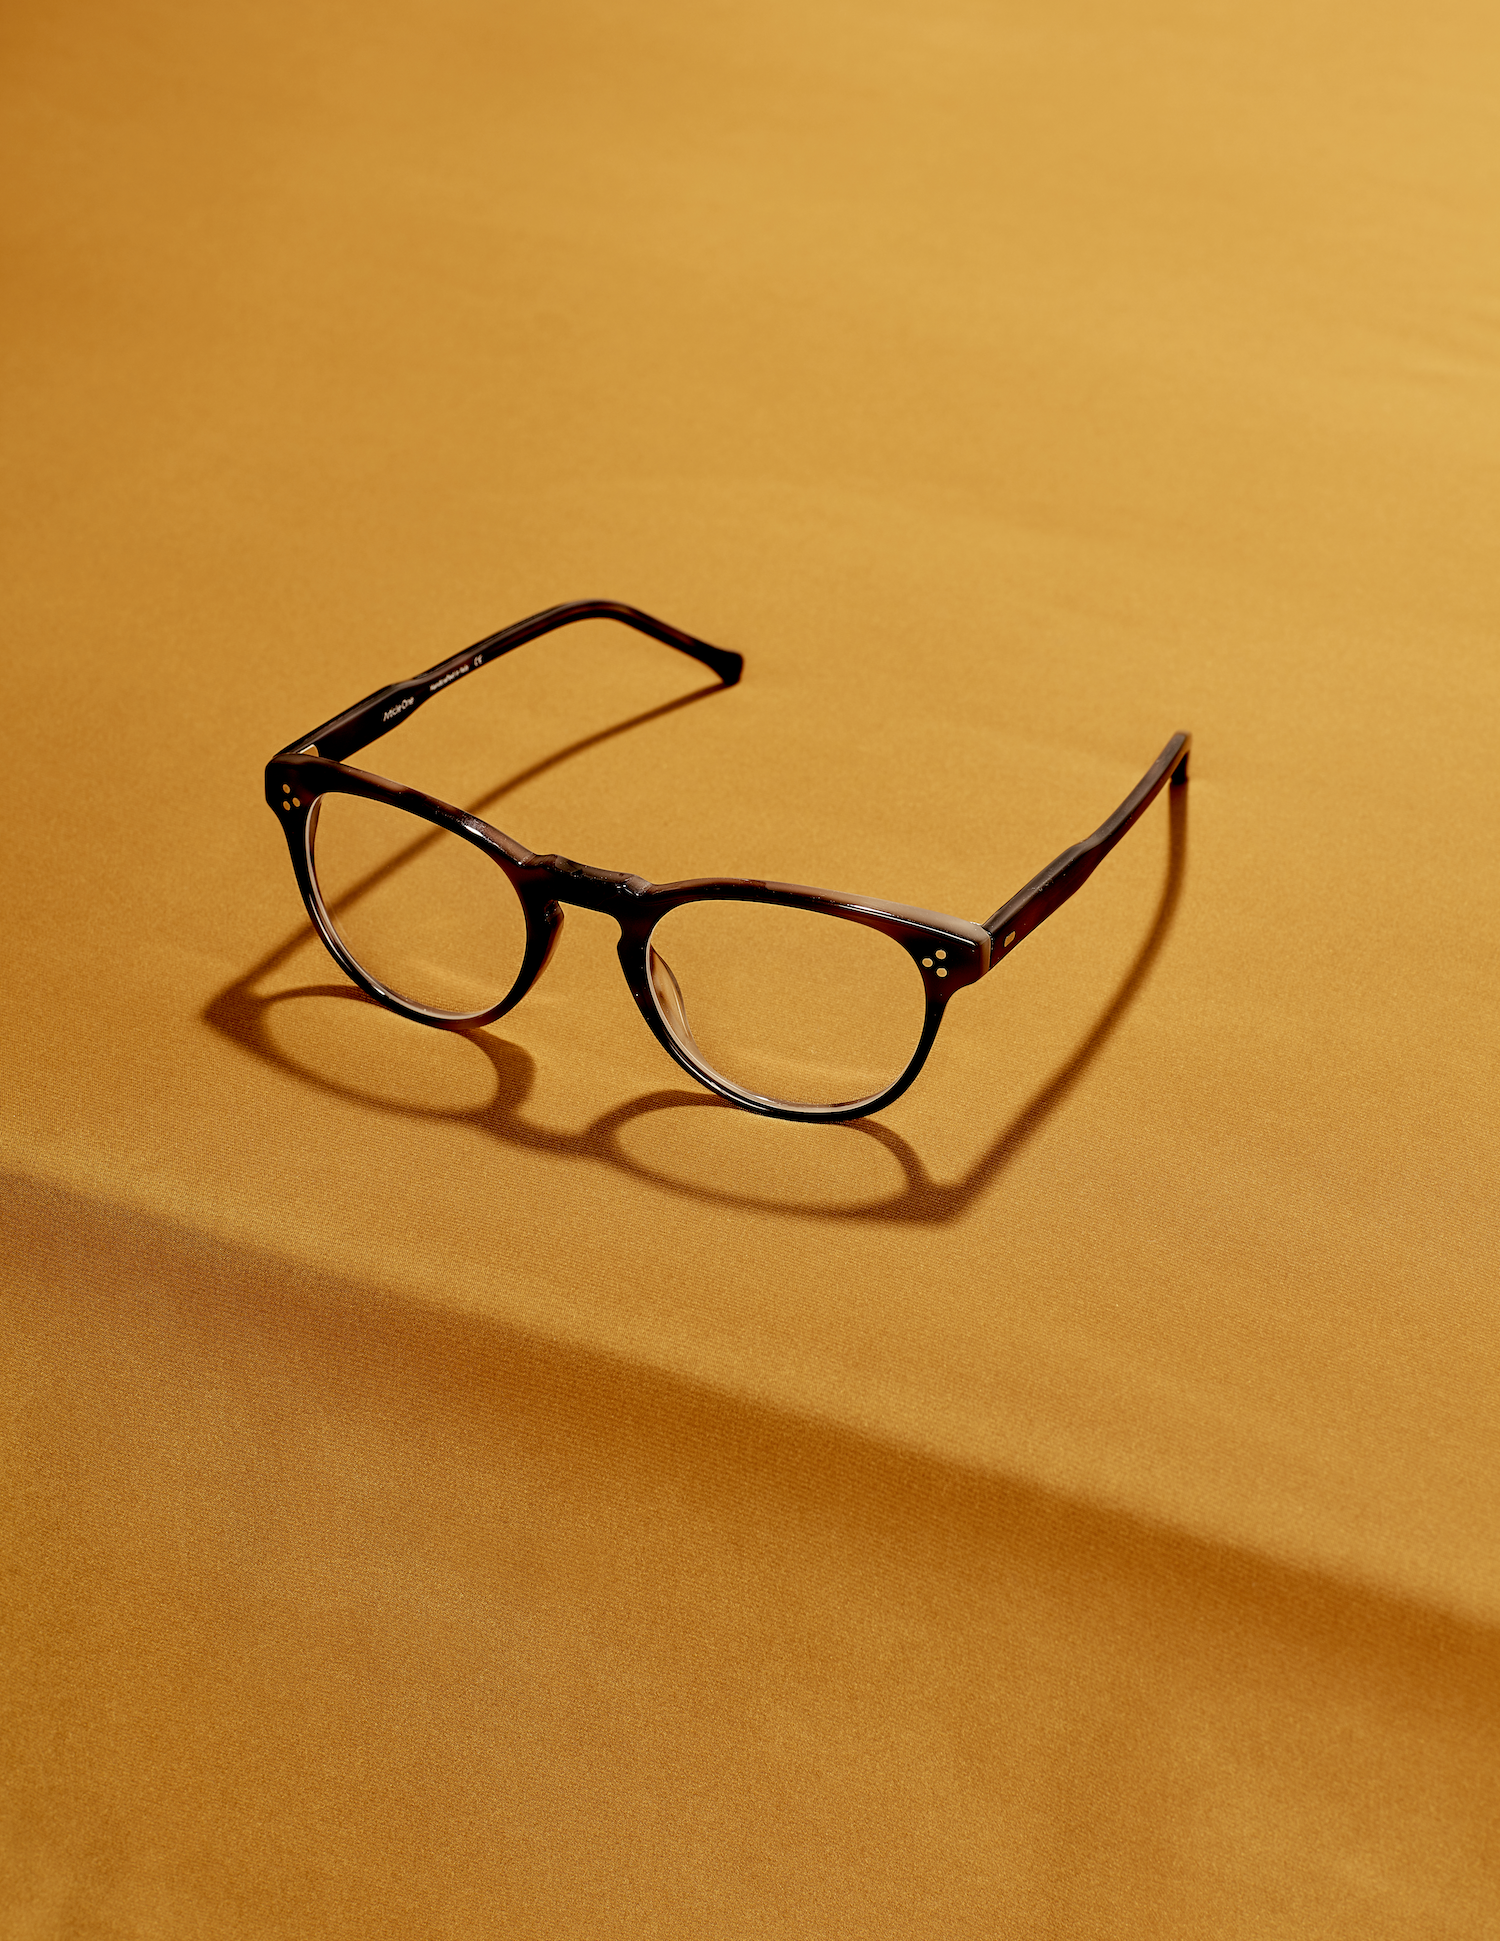 SHOP GLASSES - STARTING AT $129 SHOP NOW